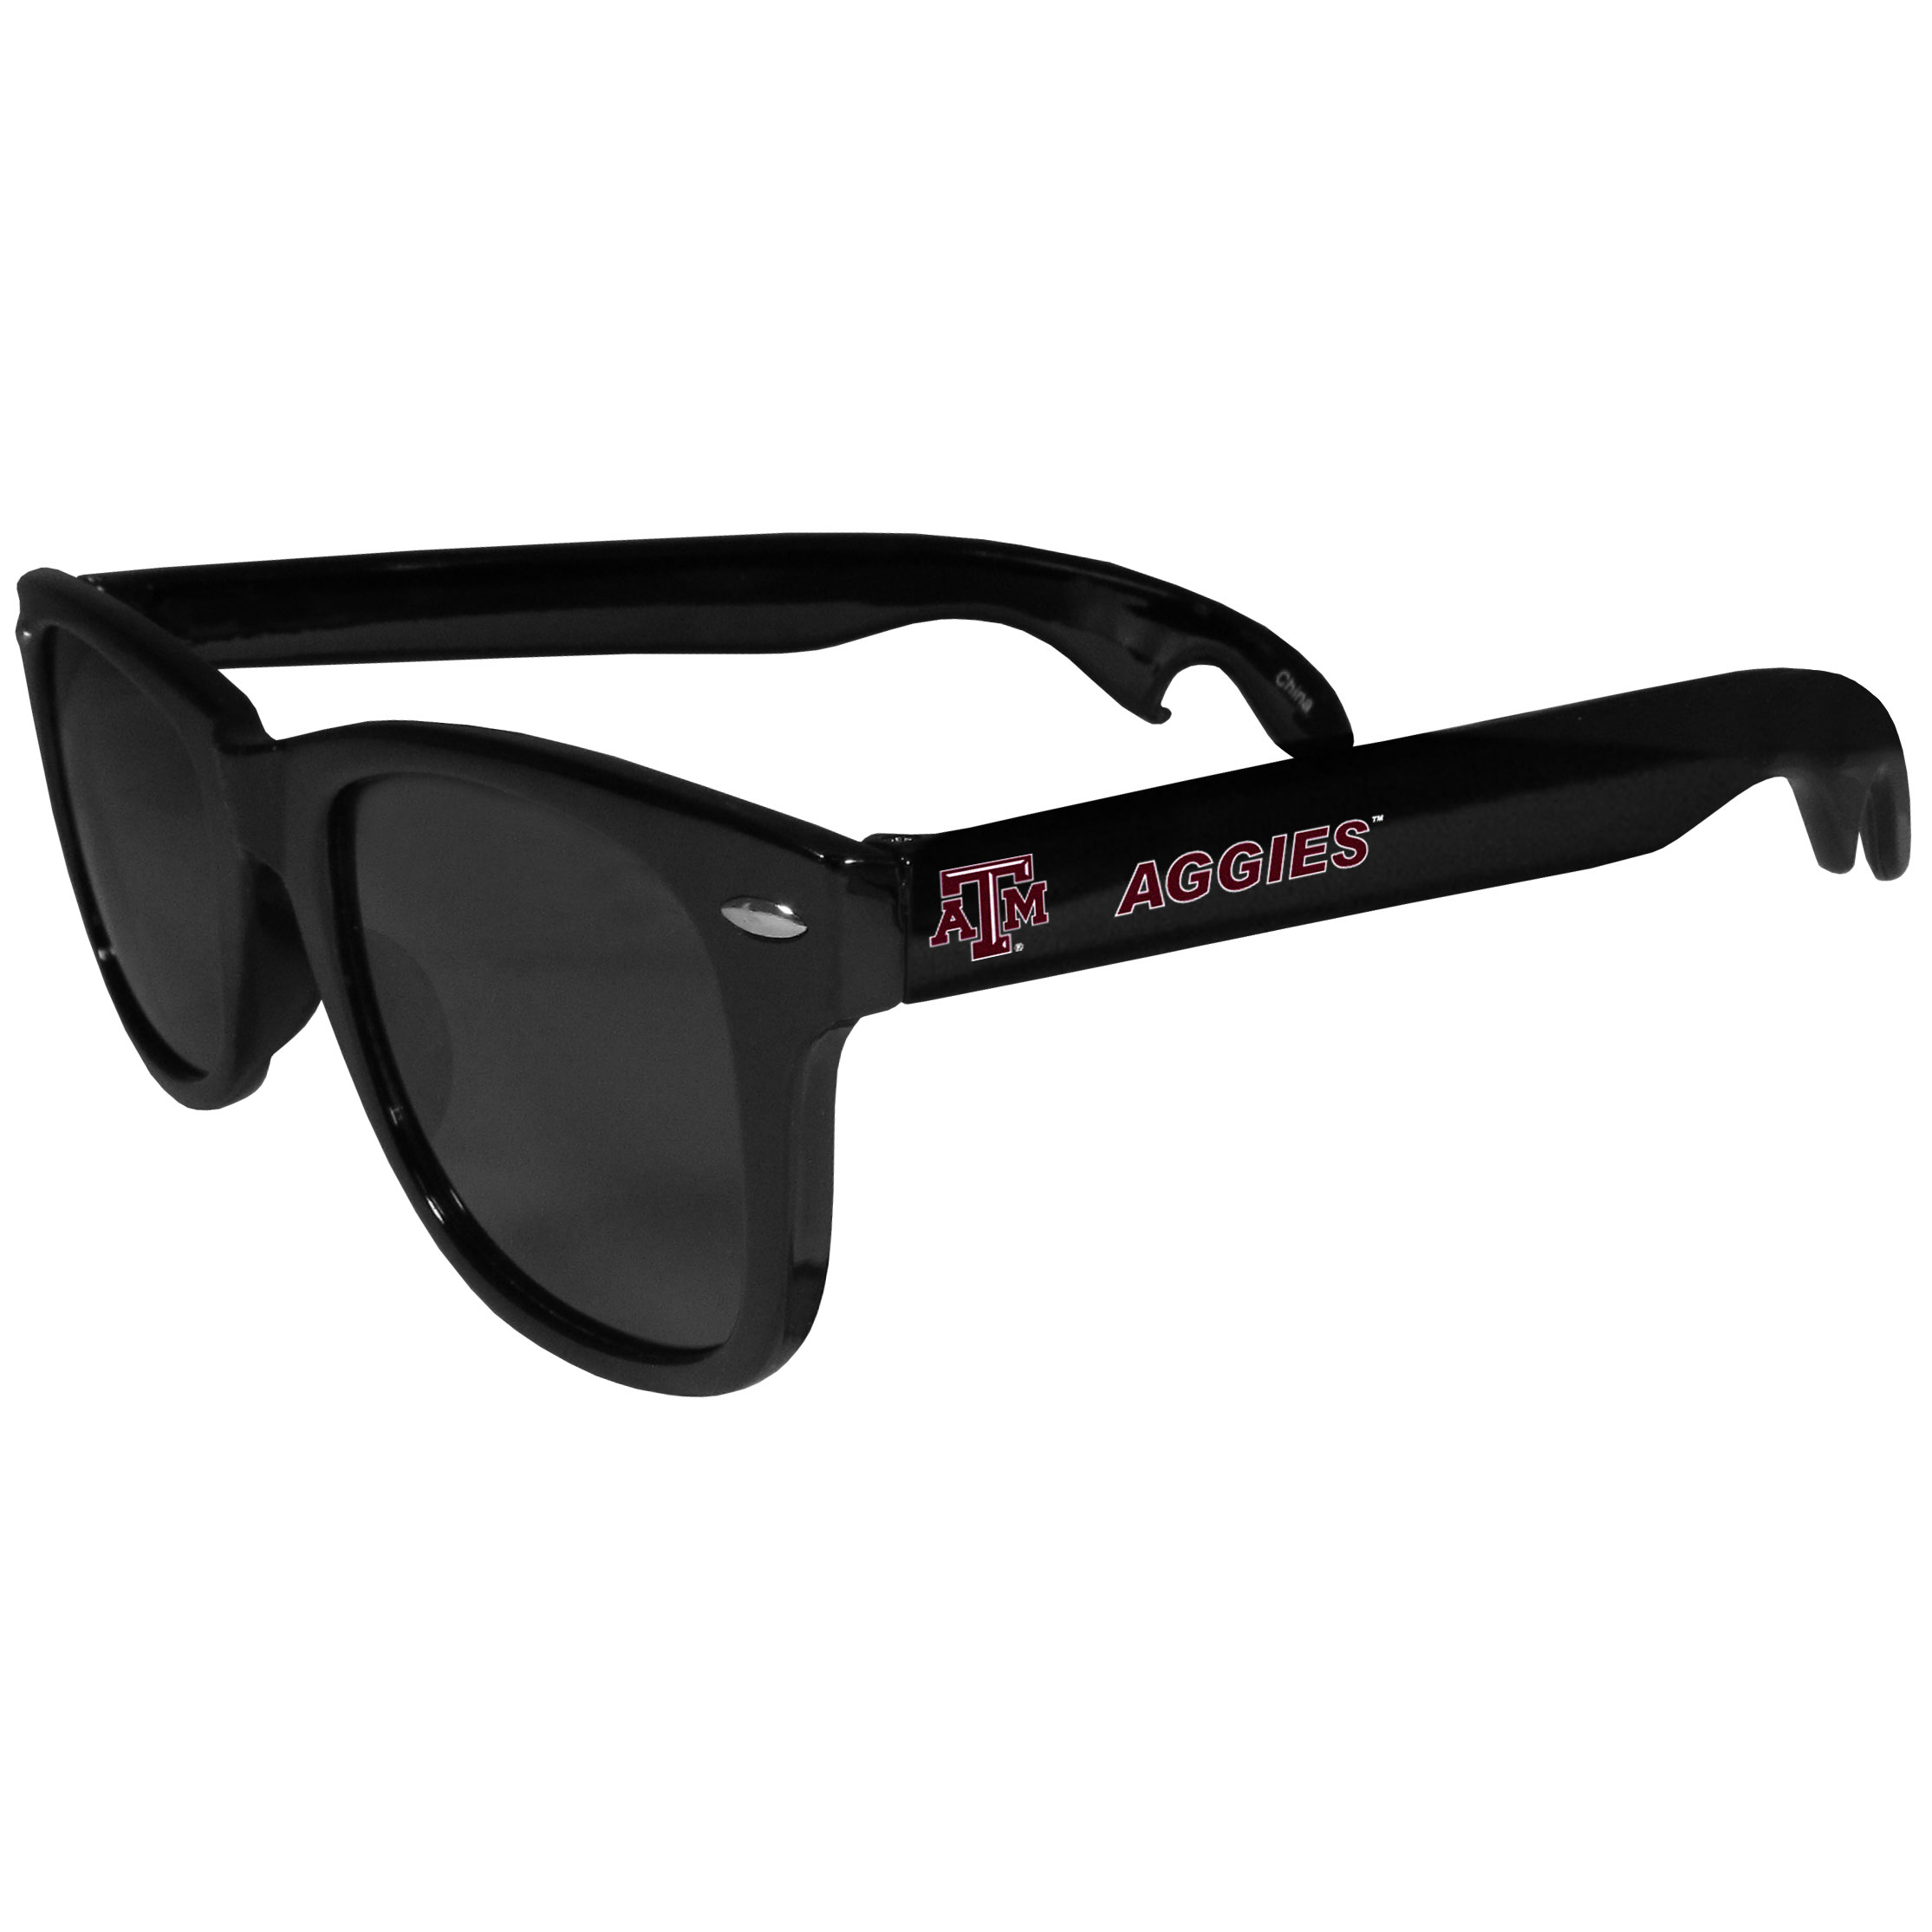 Texas A and M Aggies Beachfarer Bottle Opener Sunglasses - Seriously, these sunglasses open bottles! Keep the party going with these amazing Texas A & M Aggies bottle opener sunglasses. The stylish retro frames feature team designs on the arms and functional bottle openers on the end of the arms. Whether you are at the beach or having a backyard BBQ on game day, these shades will keep your eyes protected with 100% UVA/UVB protection and keep you hydrated with the handy bottle opener arms.